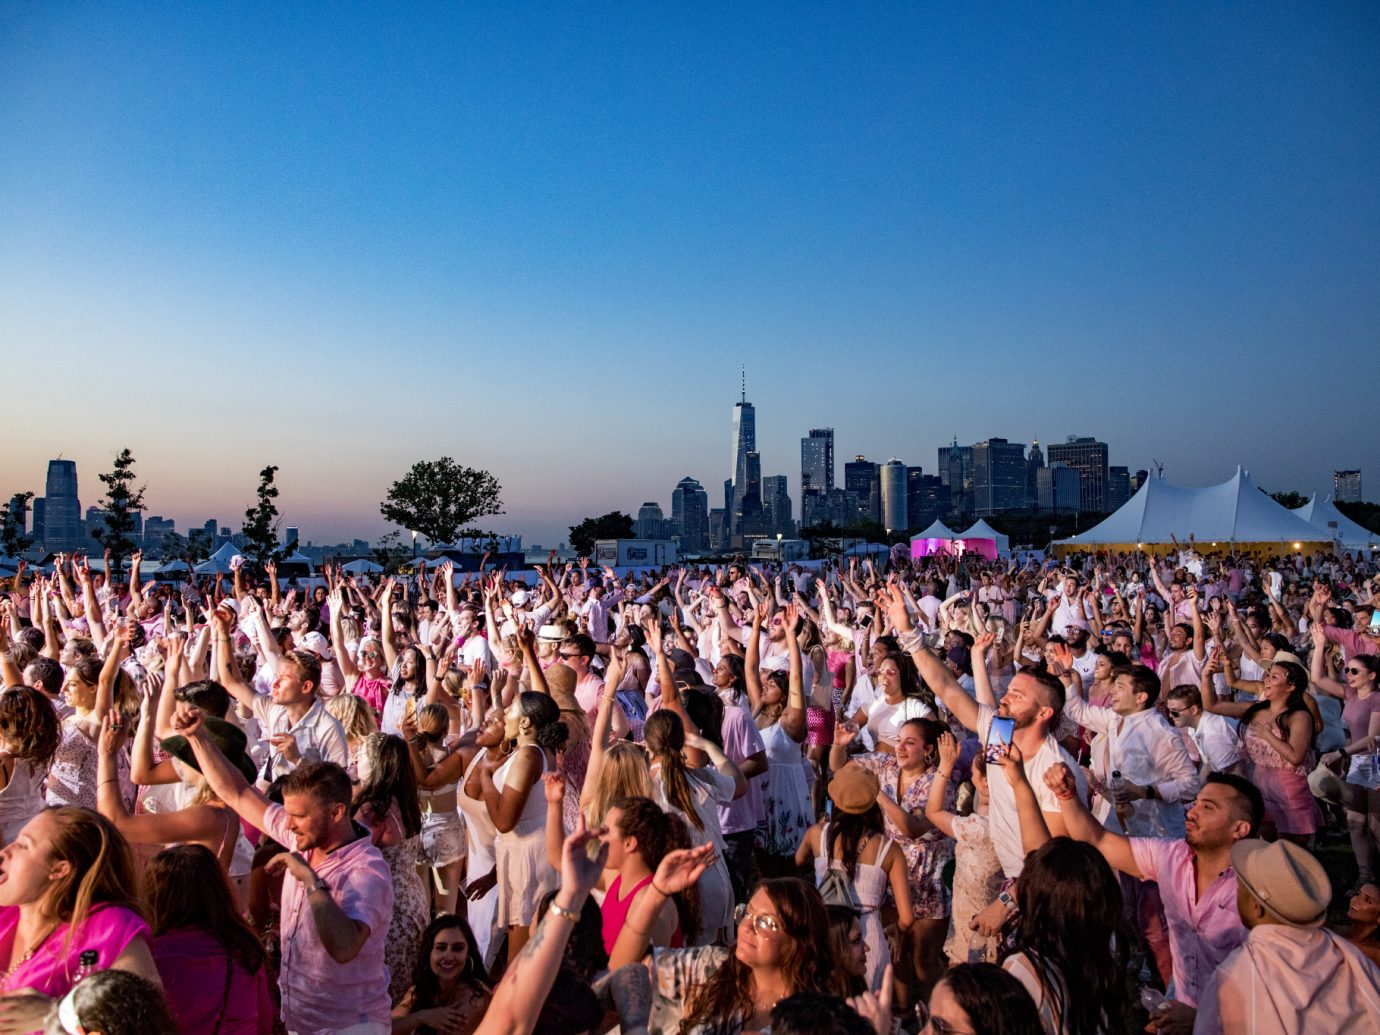 crowd of people dancing to music at dusk with NYC skyline in background